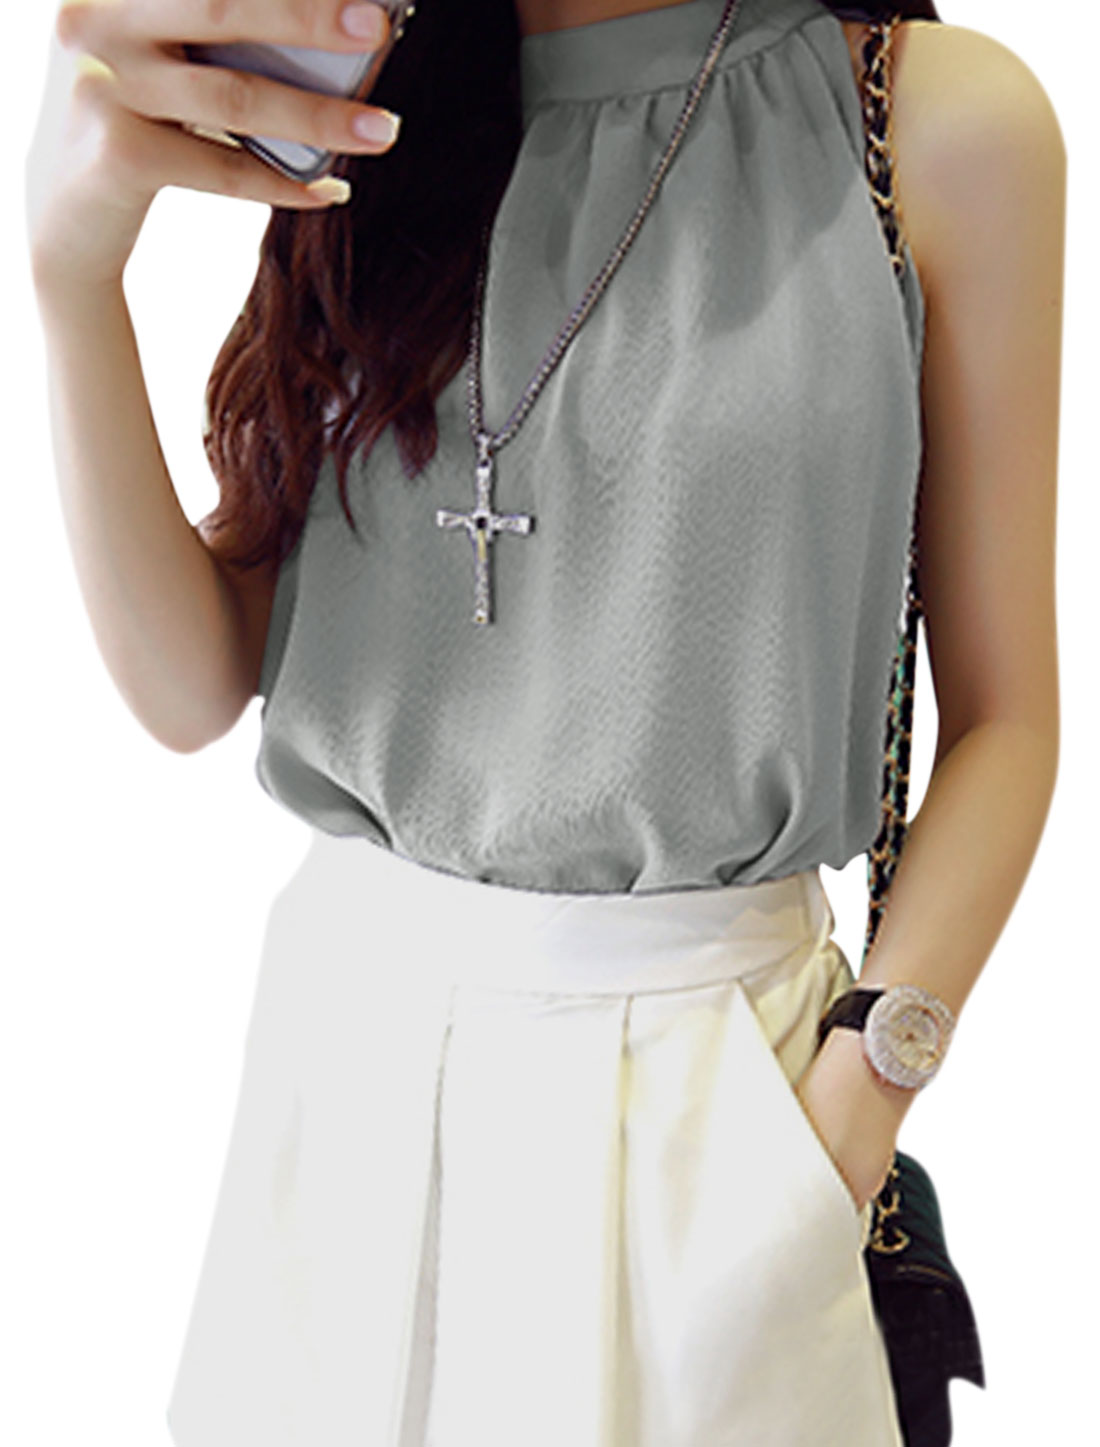 Woman Halter Neck Sleeveless Key Hole Back Casual Chiffon Top Light Gray S